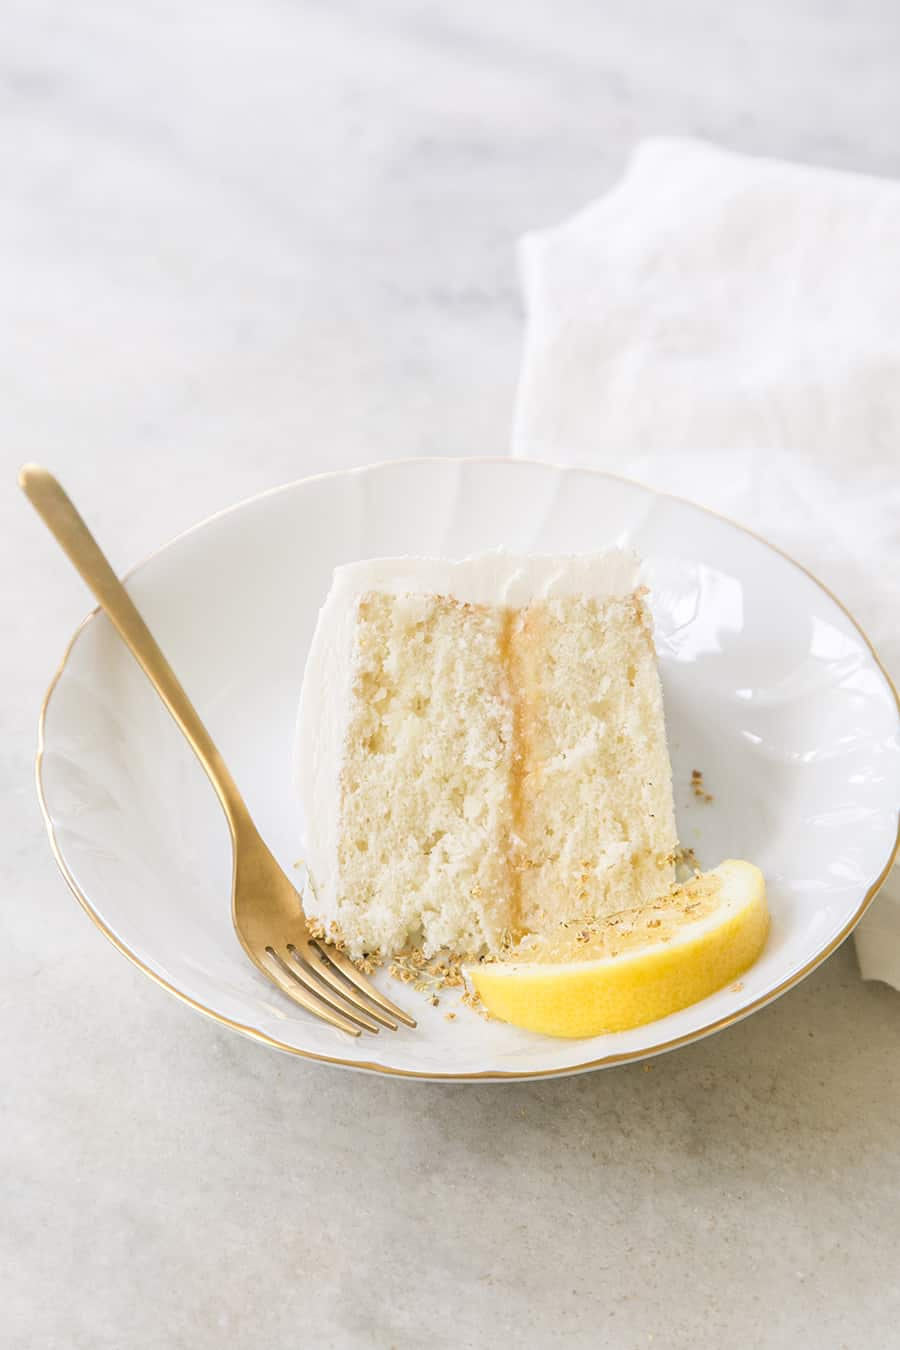 A slice of lemon elderflower cake on a white plate